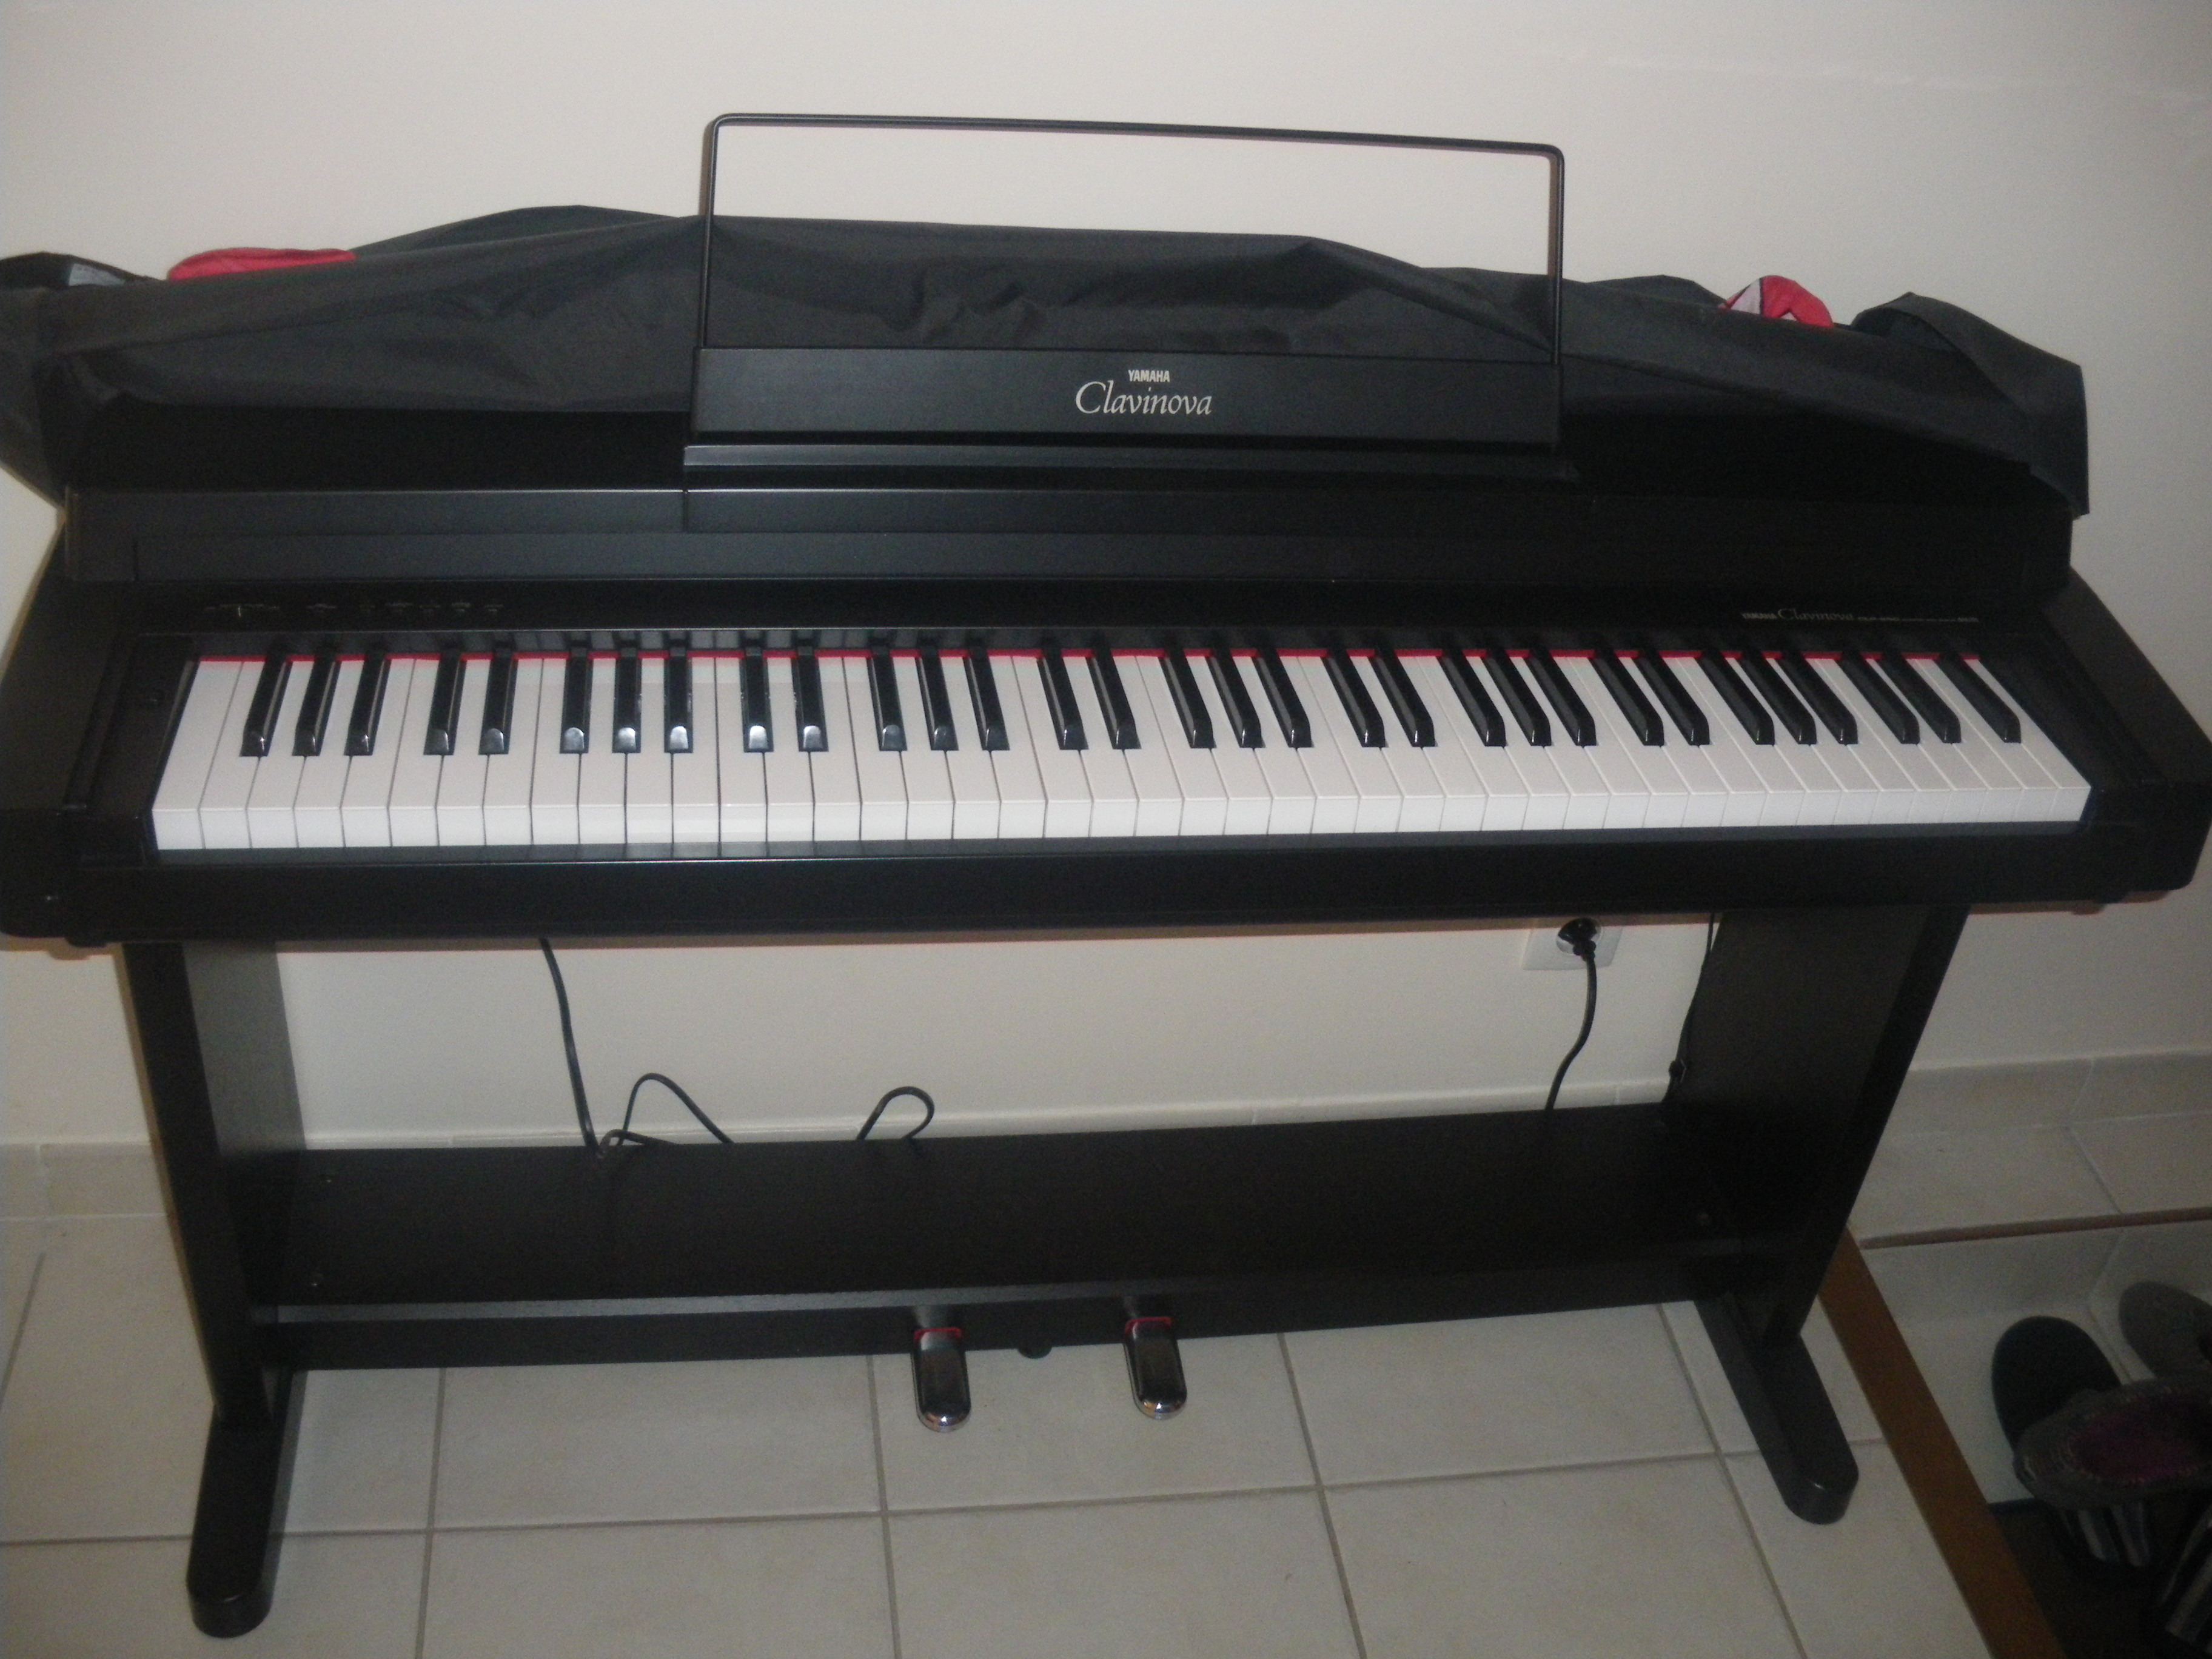 Yamaha clp 260 image 402394 audiofanzine for Yamaha clavinova price list